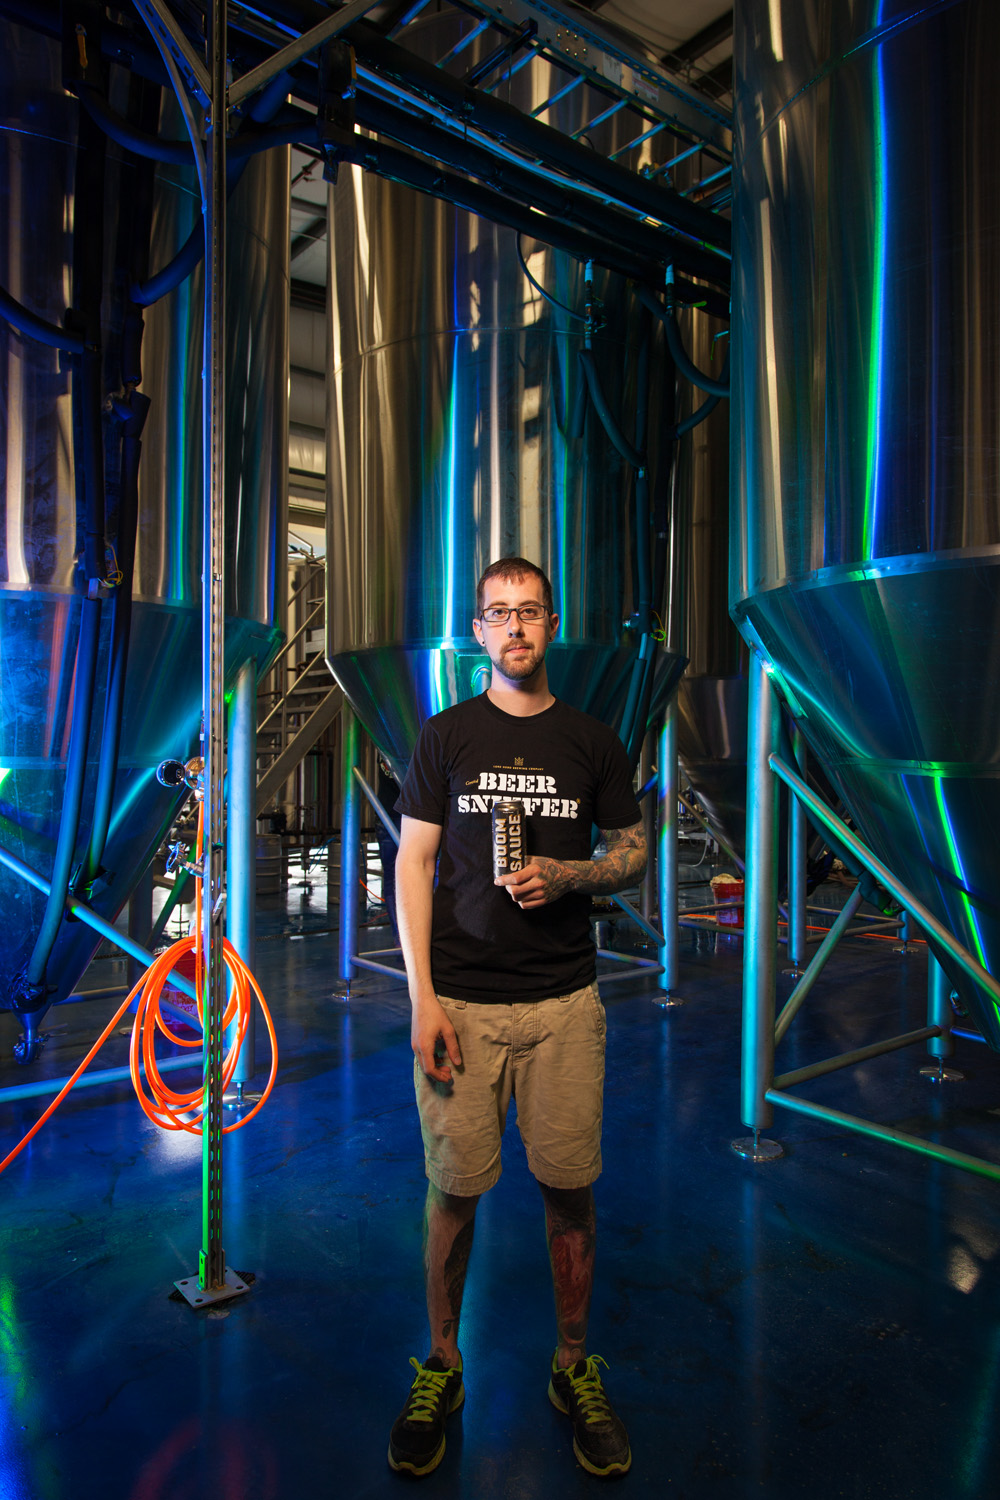 Vince Tursi, Head Brewer Lord Hobo Brewing Co. Woburn, MA Established in 2015